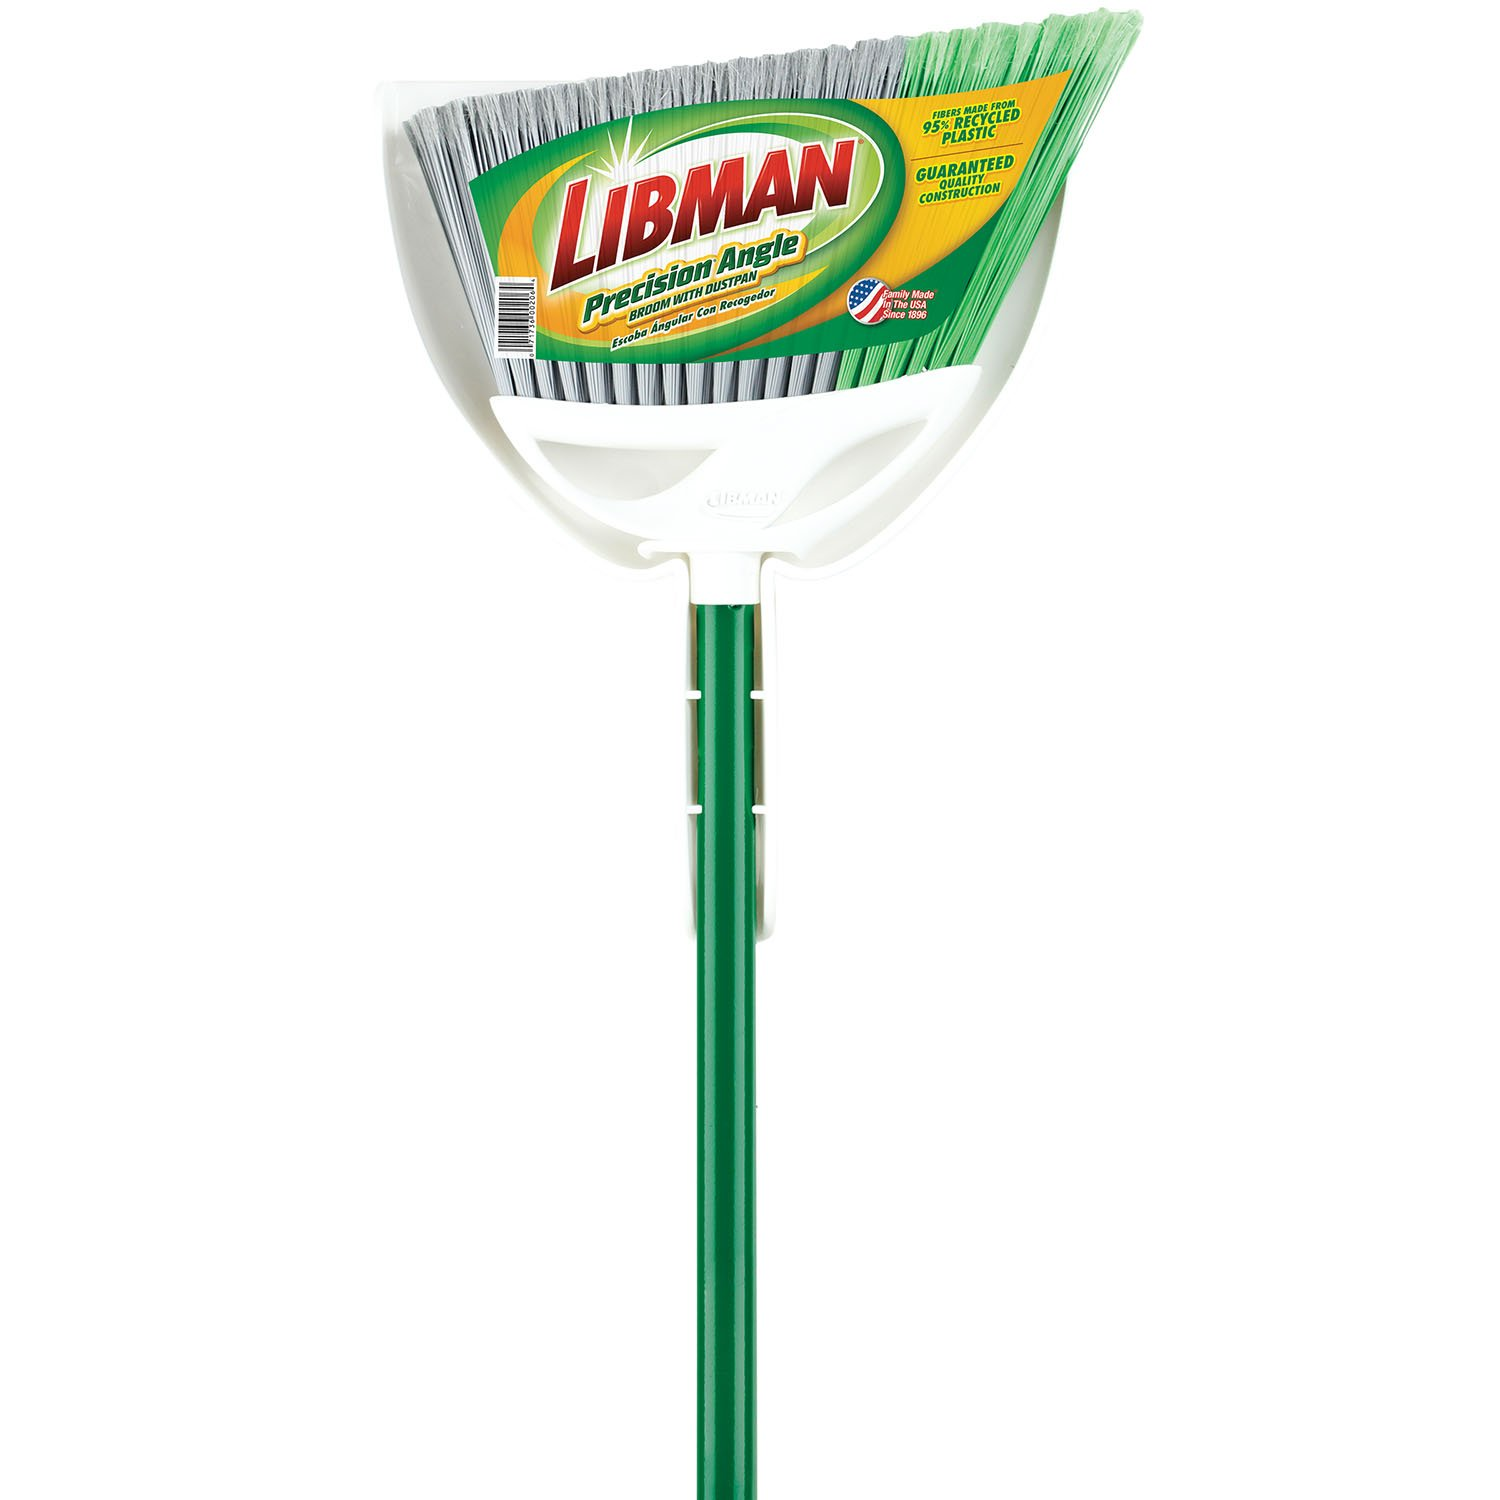 Libman 206 Precision Angle Broom with Dustpan by Libman